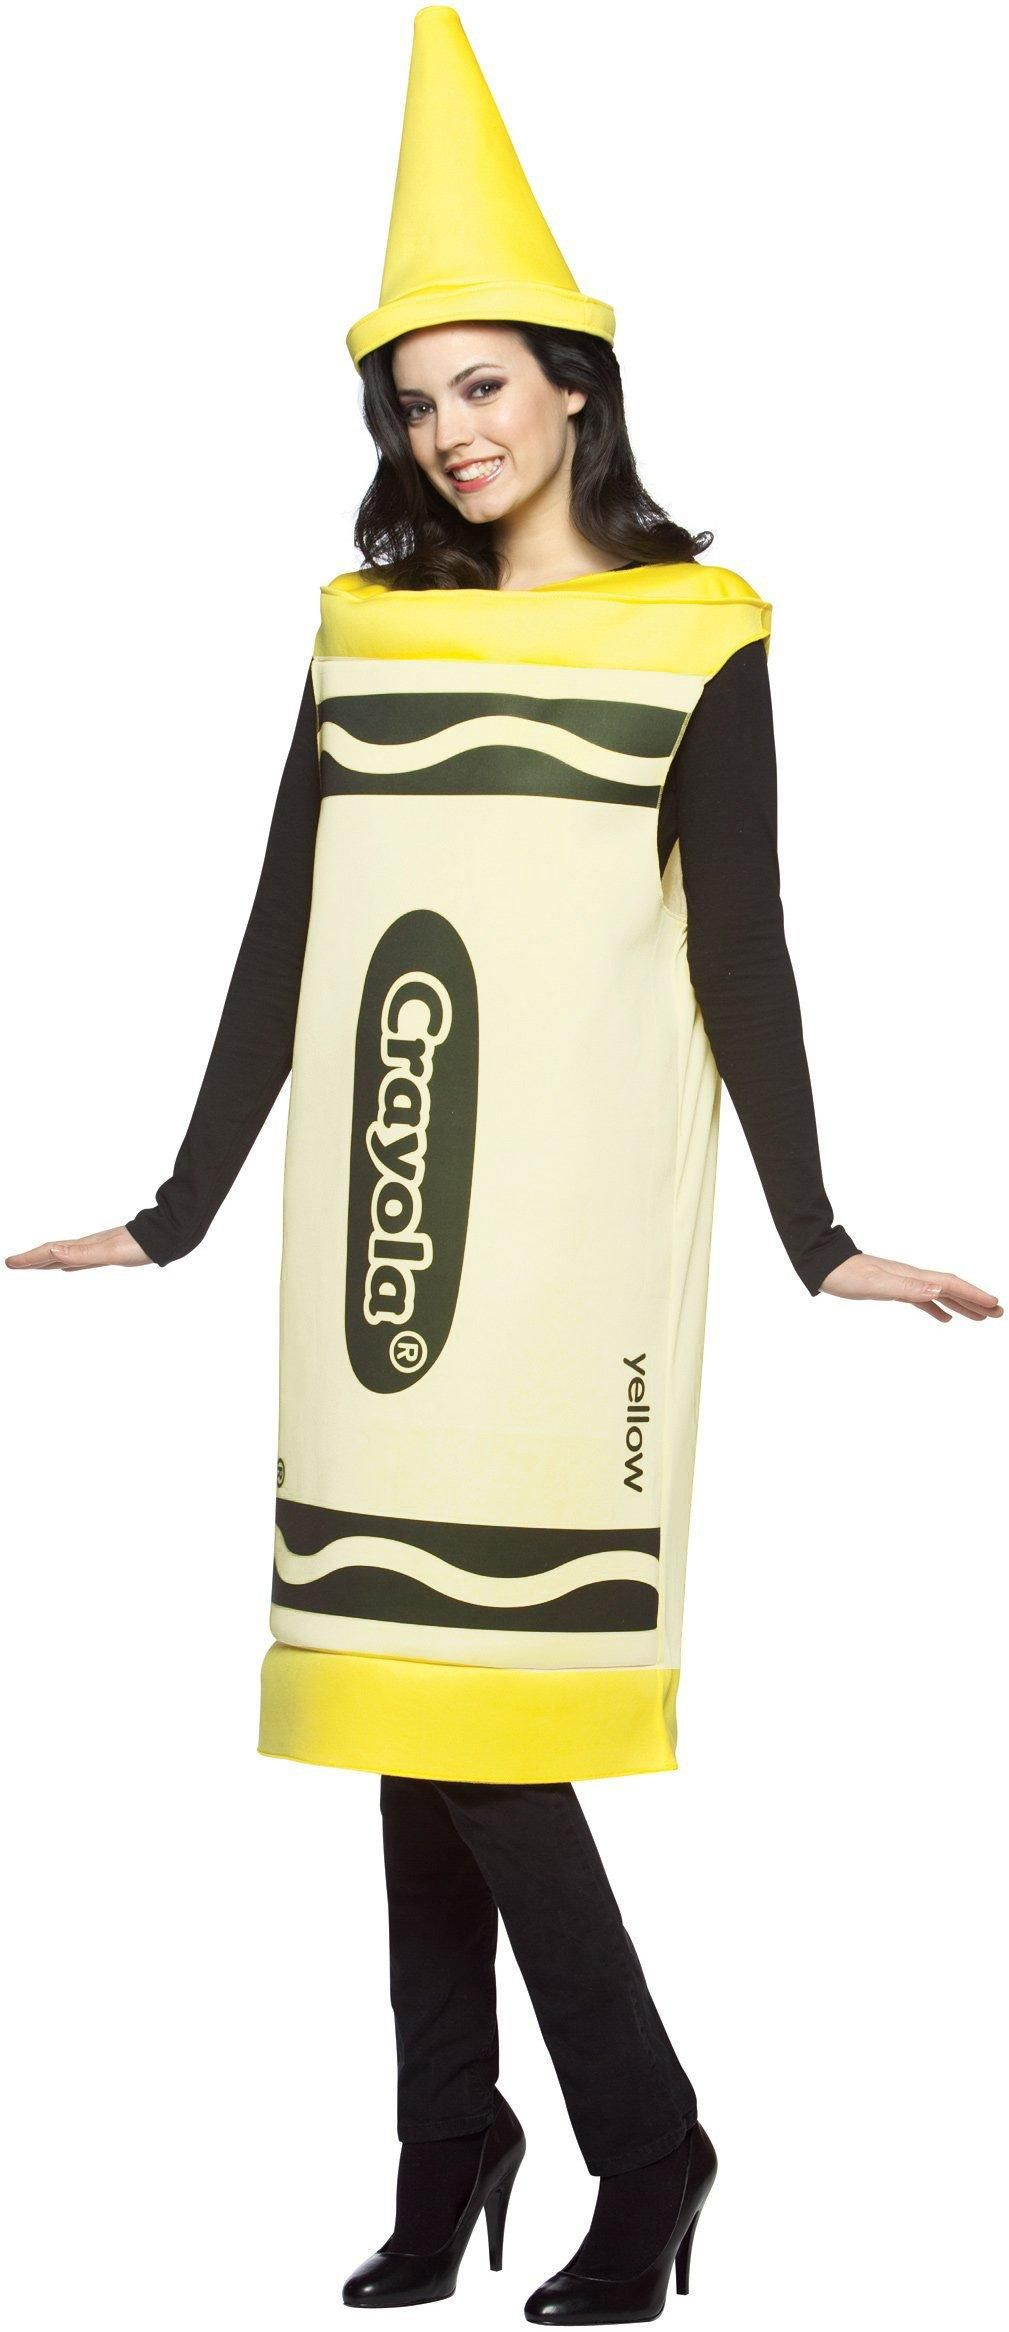 crayola yellow crayon adult costume from costumeexpress